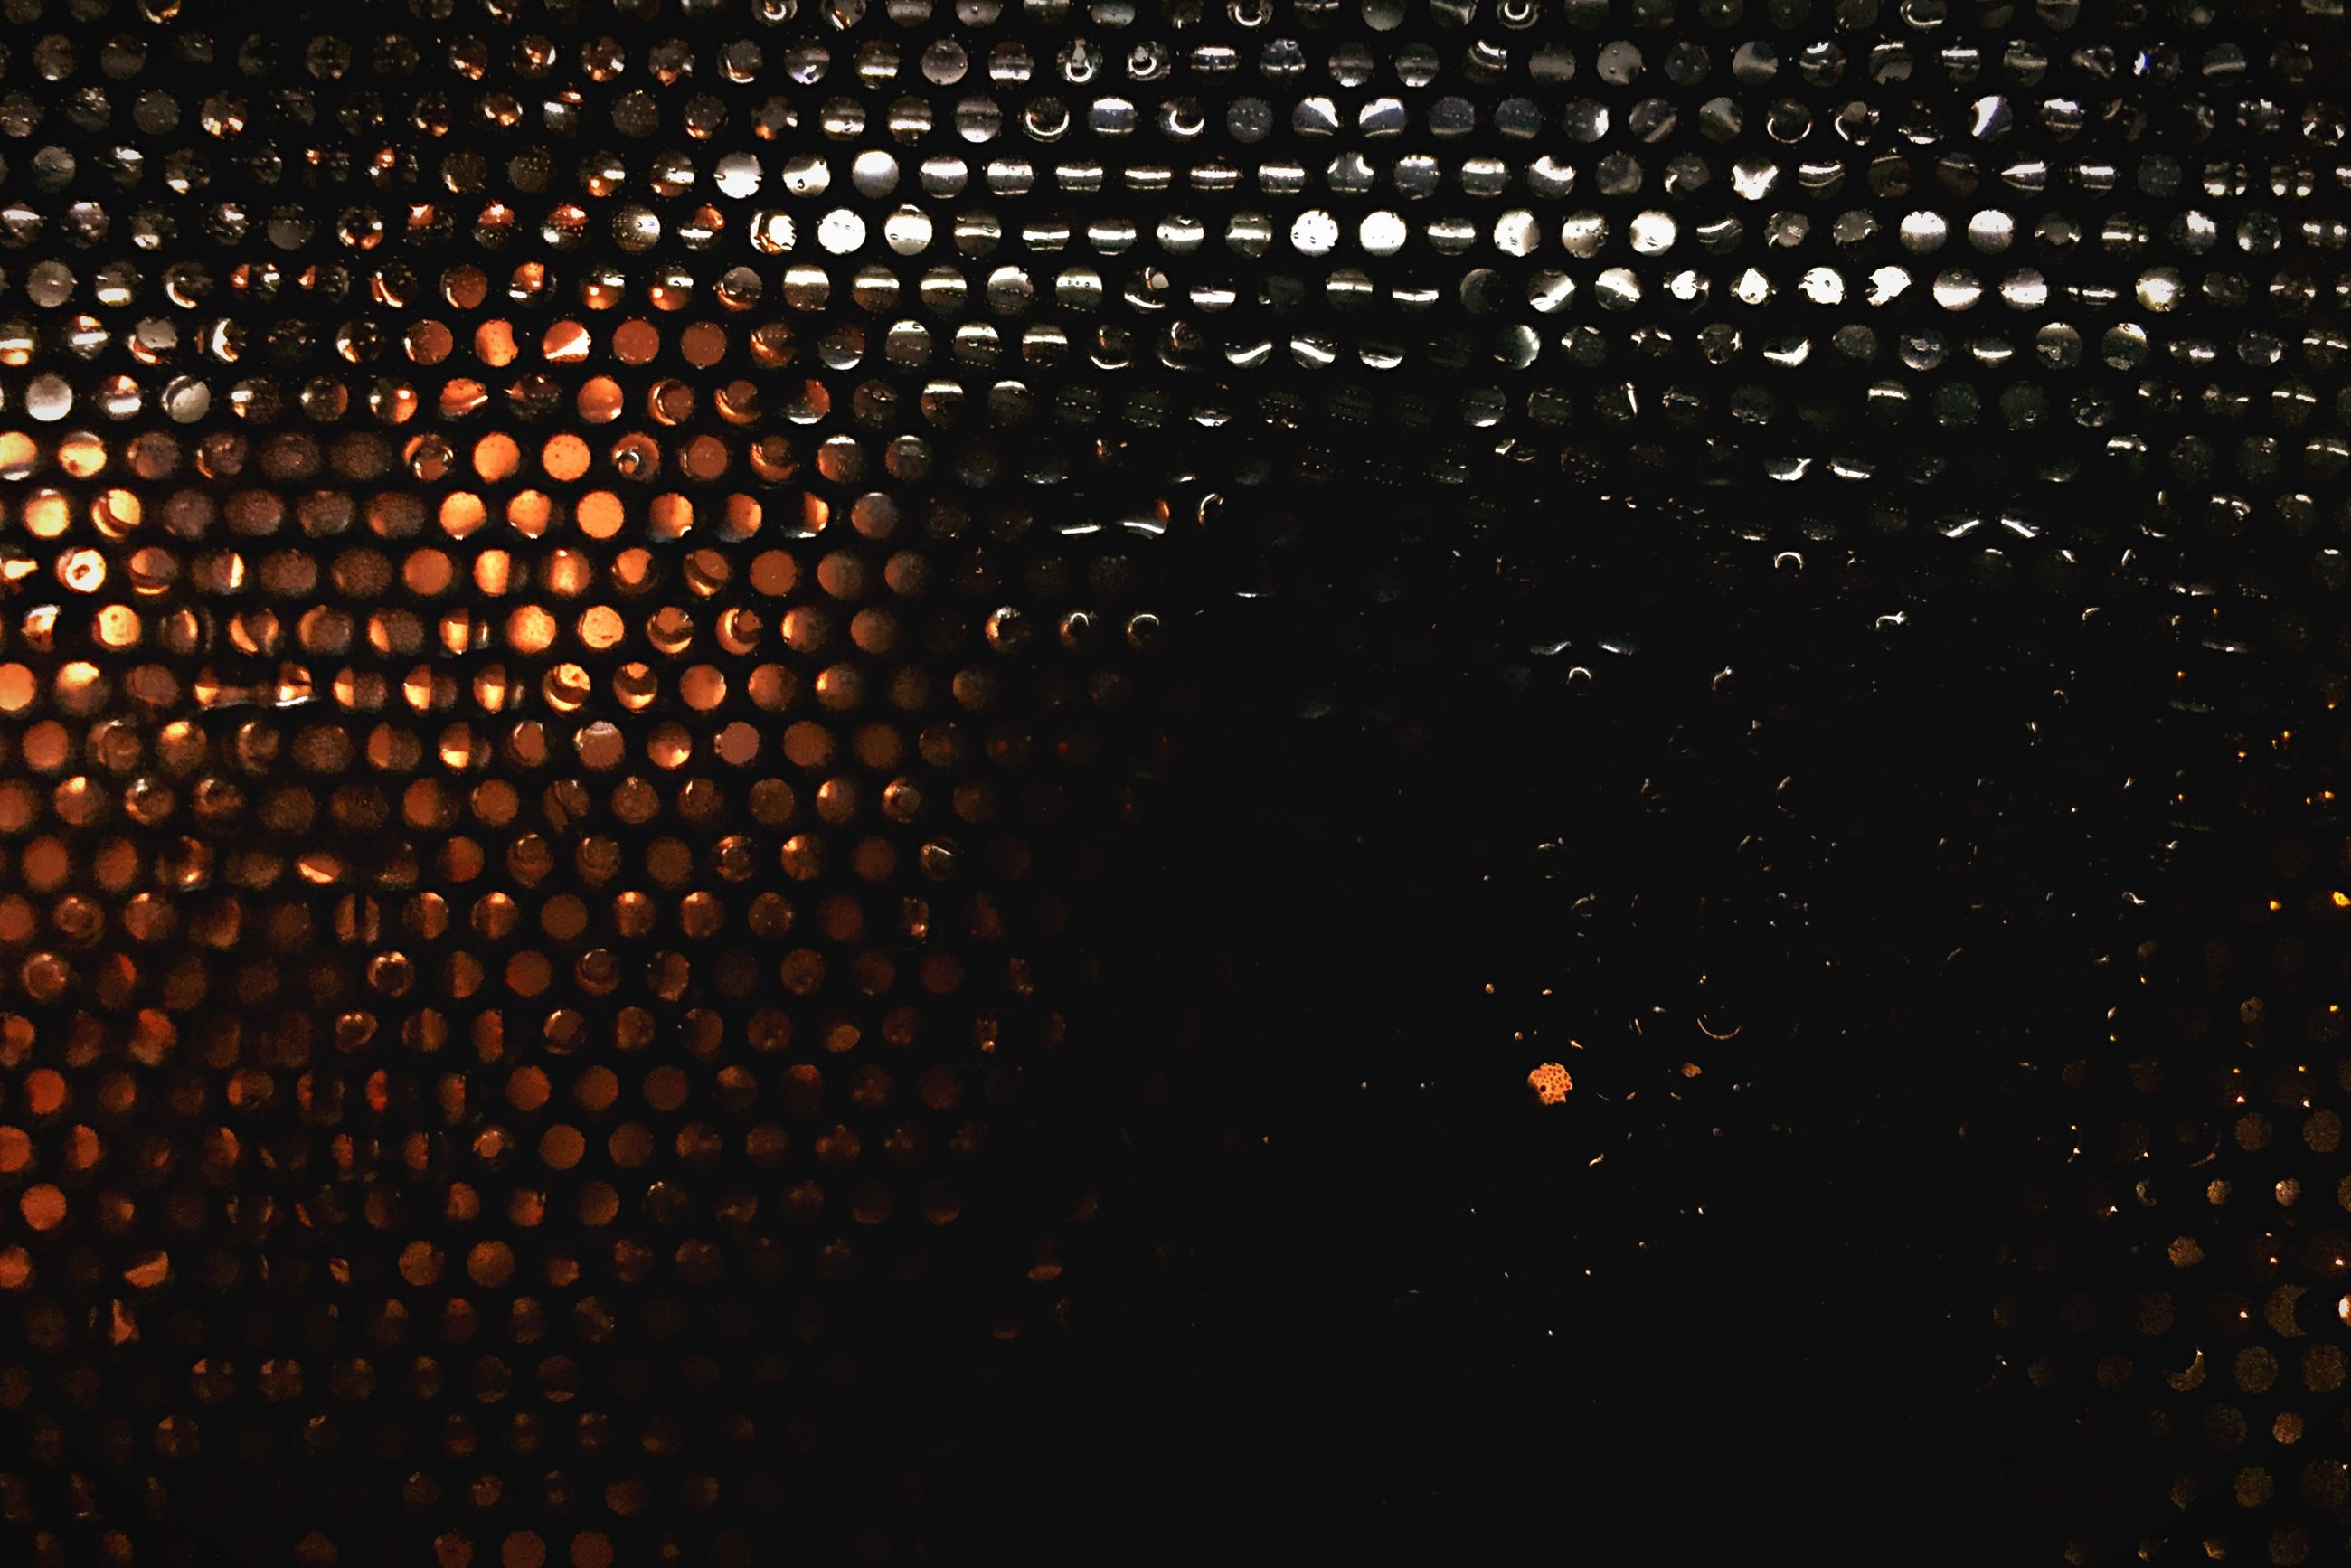 night, illuminated, indoors, full frame, dark, backgrounds, pattern, window, light - natural phenomenon, lighting equipment, glowing, no people, built structure, architecture, light, textured, close-up, glass - material, high angle view